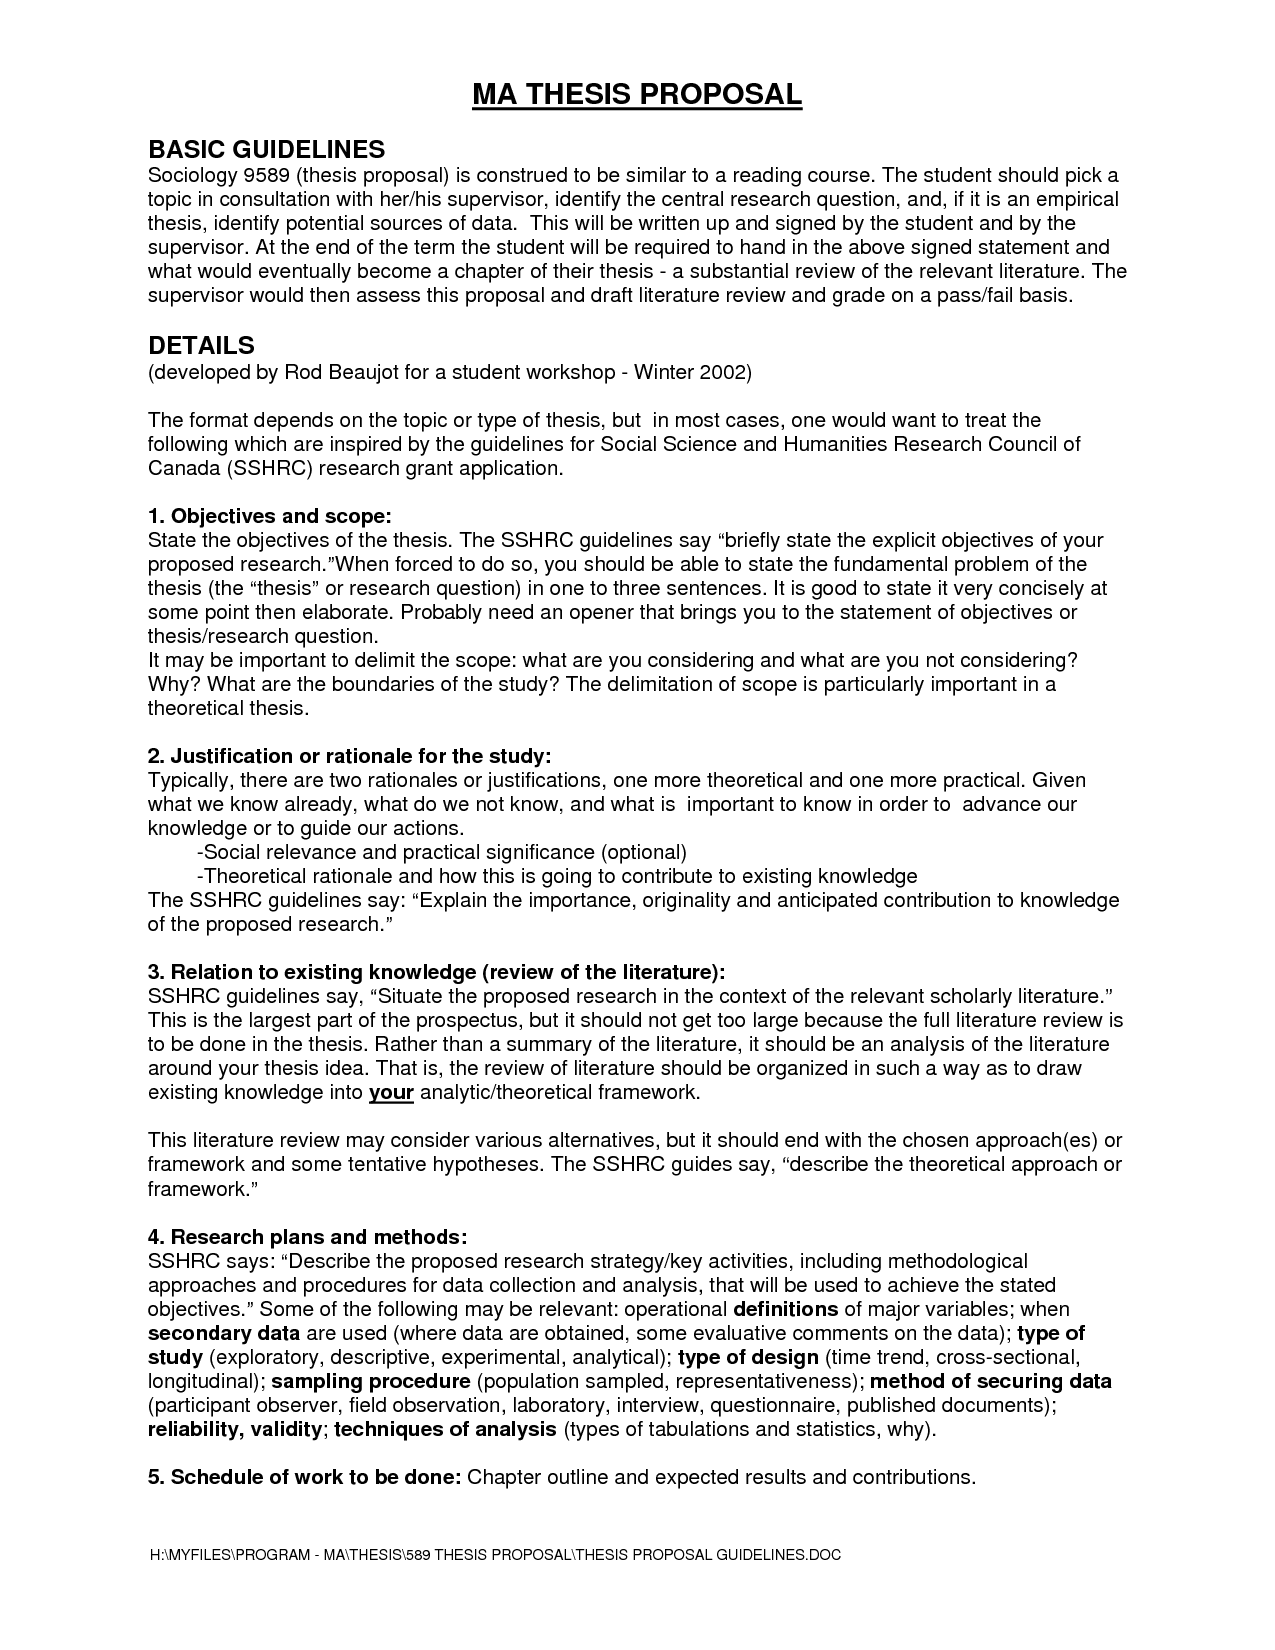 a short history of journalism for journalists a proposal and essay